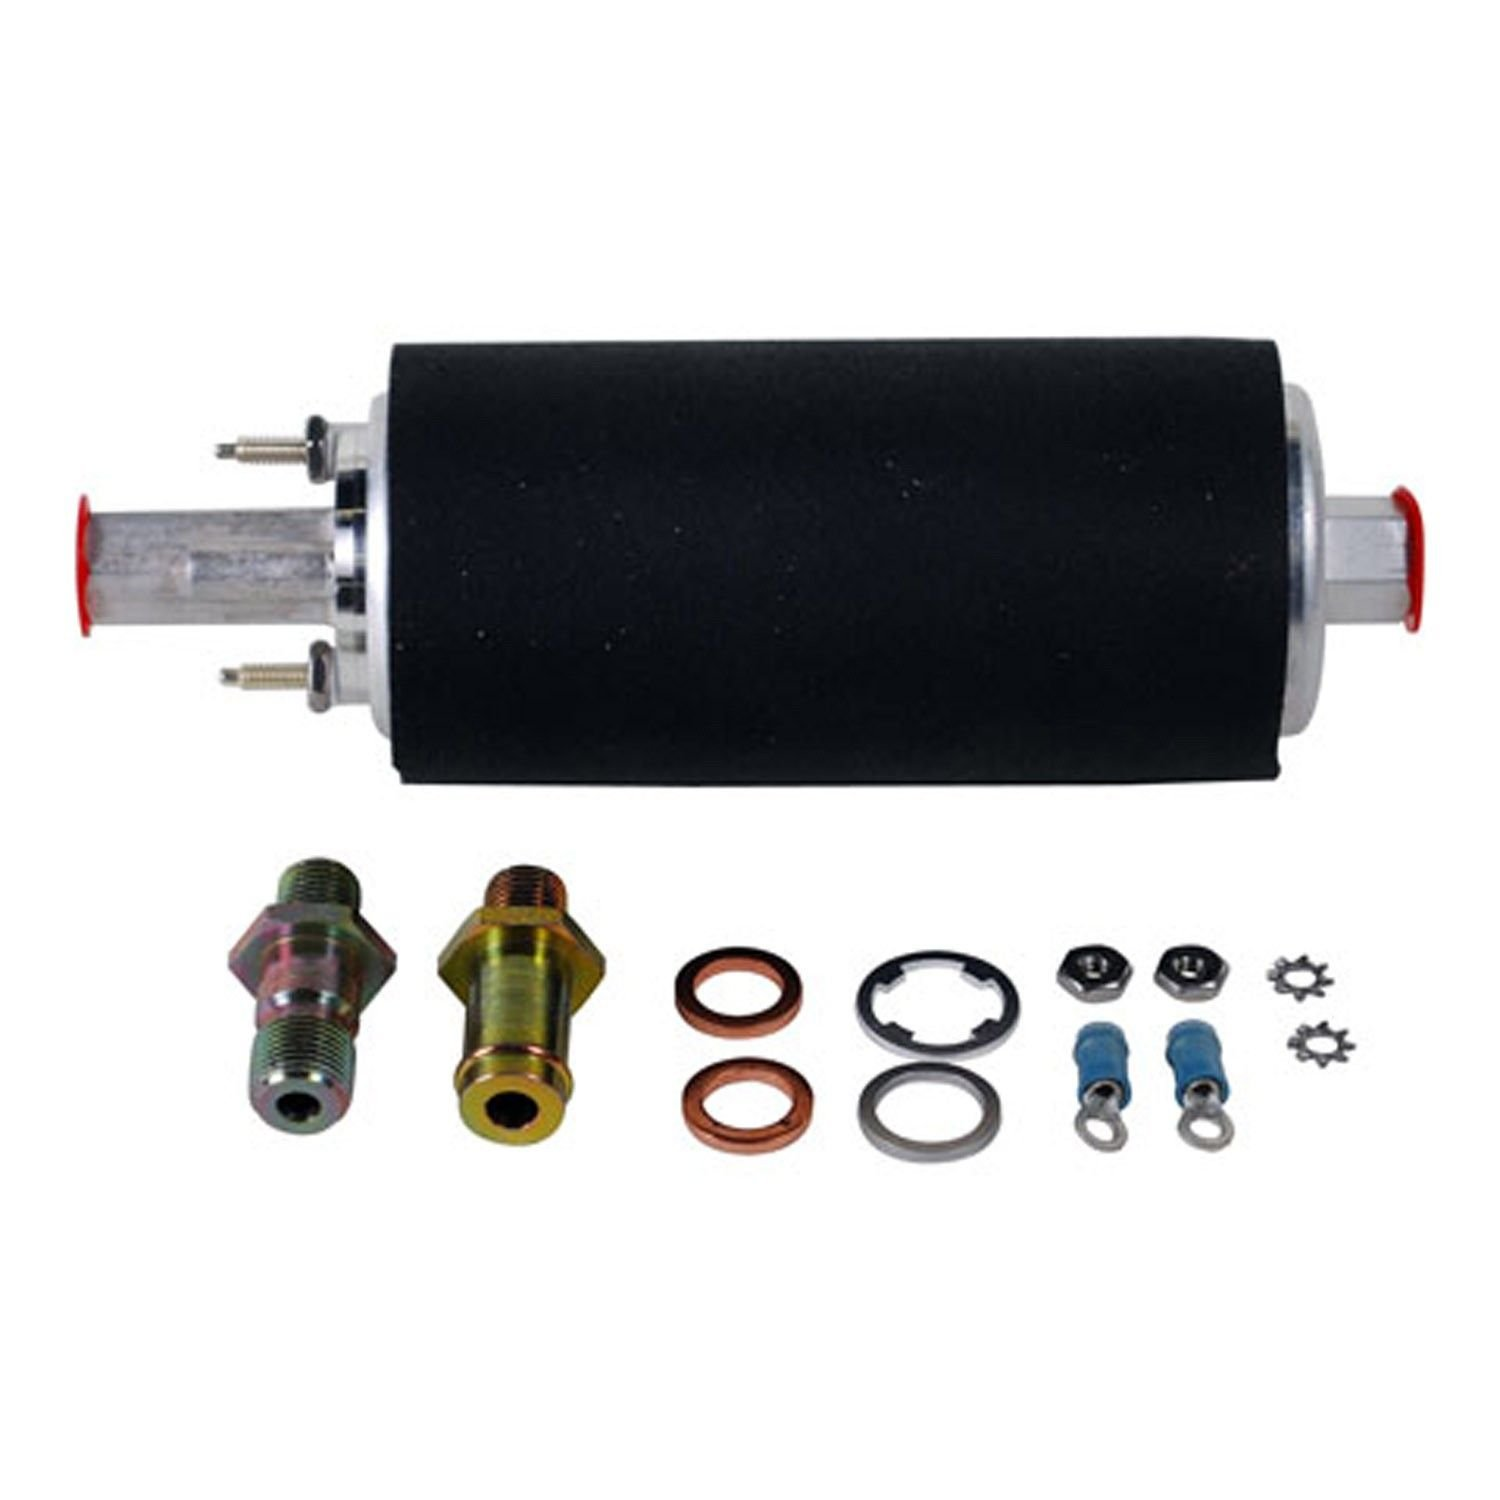 Honda Accord Electric Fuel Pump Replacement Airtex Autobest Beck 1988 Location 1985 4 Cyl 18l Denso 951 3003 External Sei Model With Fi